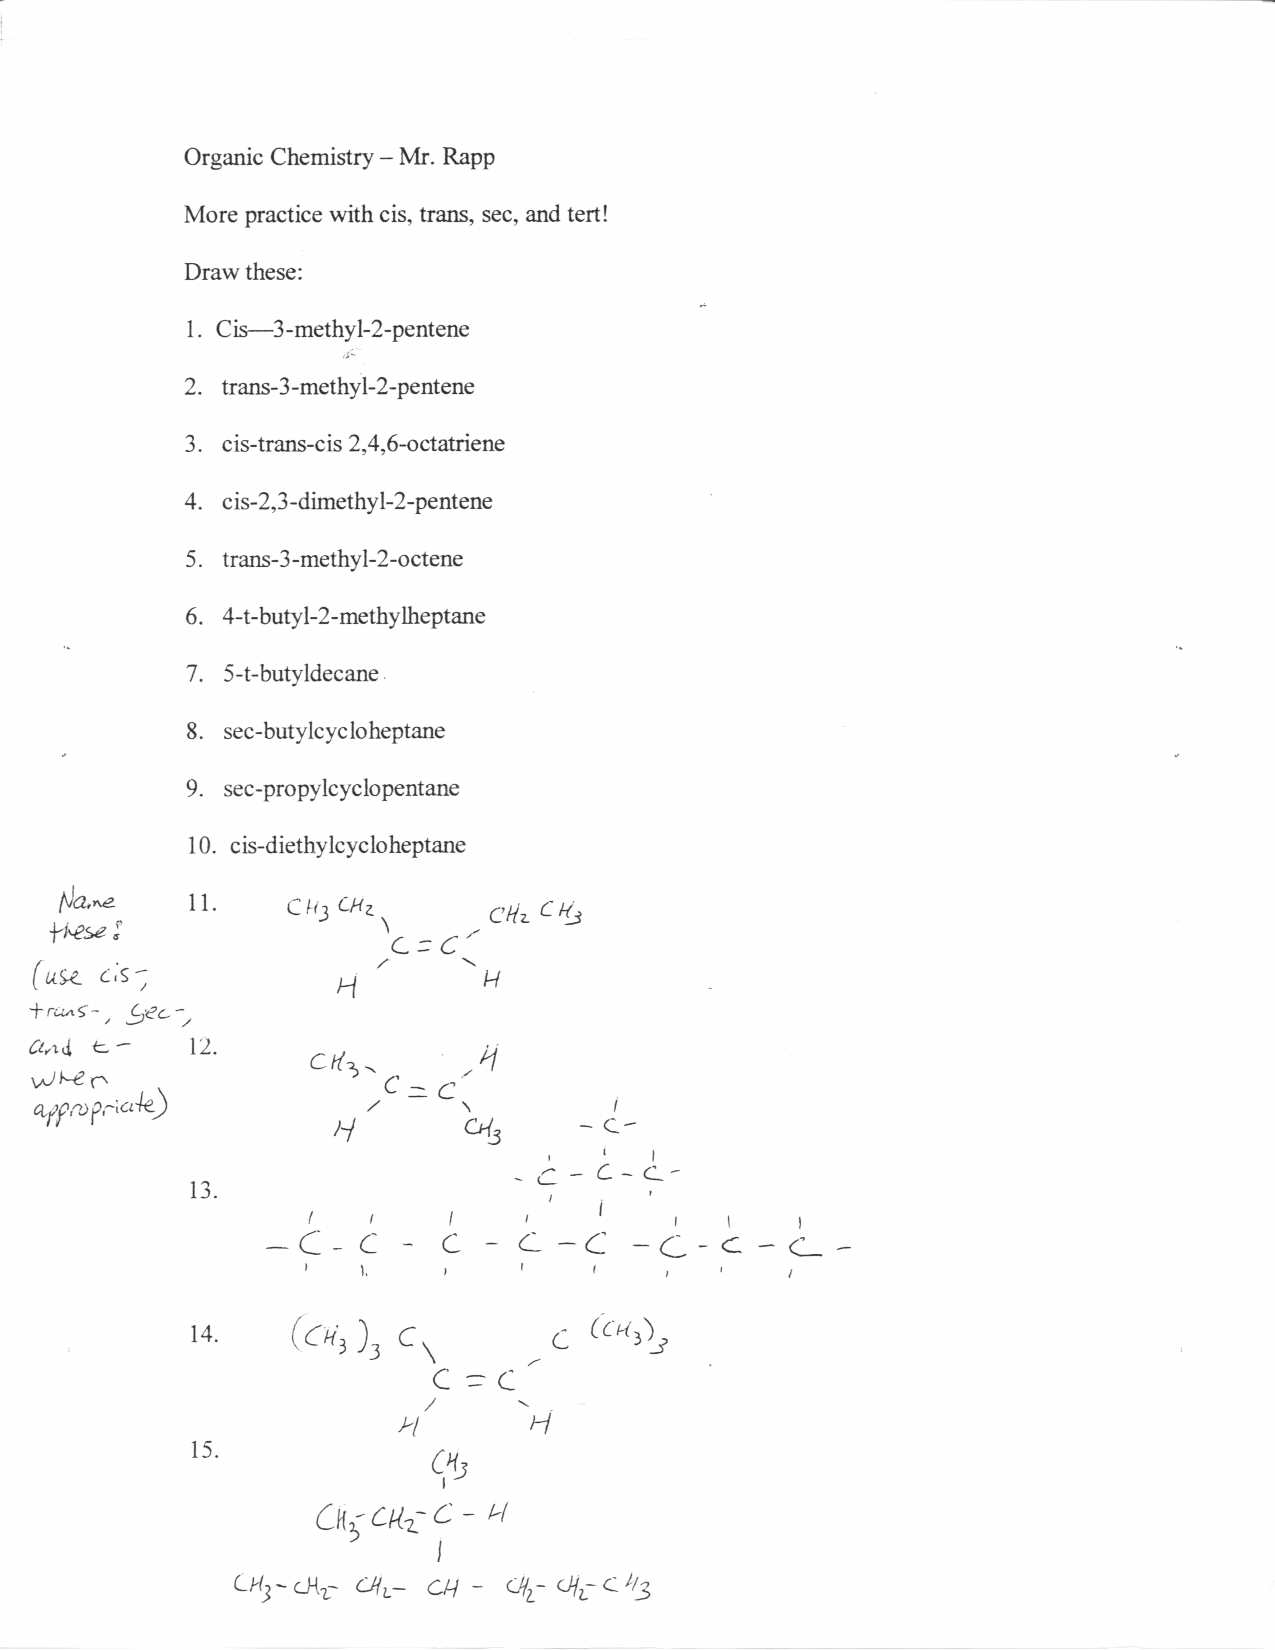 30 Organic Chemistry Basics Worksheet Answers